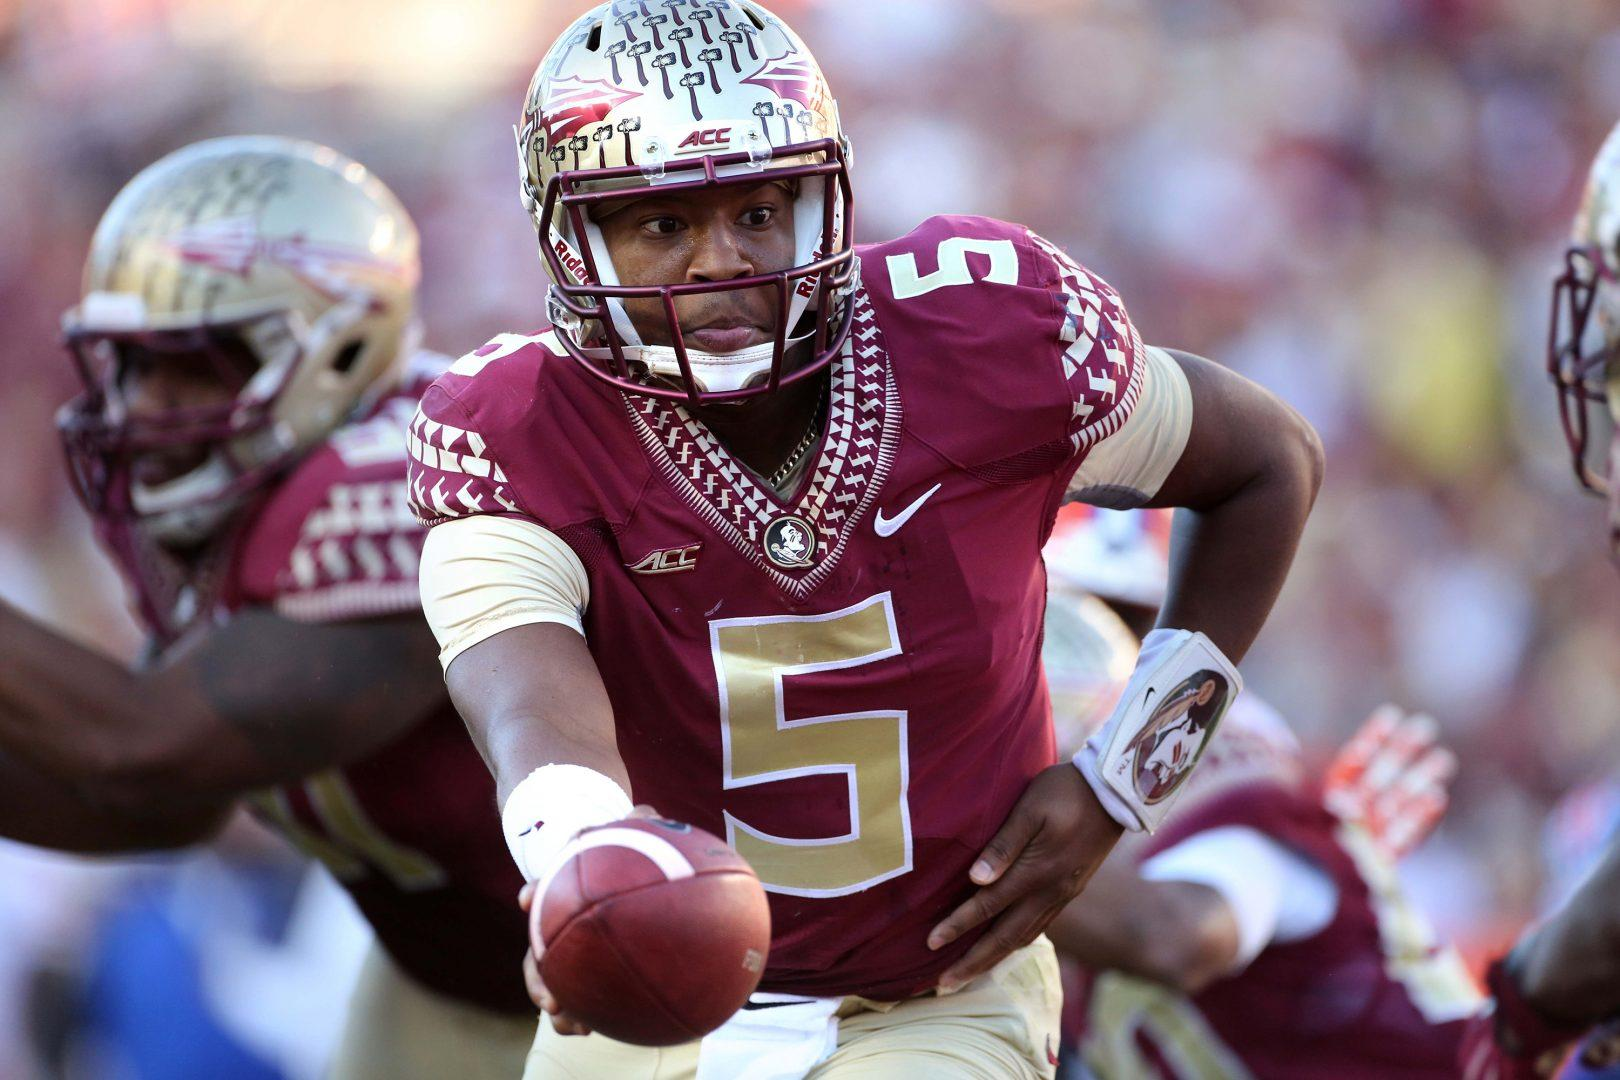 Florida State quarterback Jameis Winston (5) hands off during the second half against Florida at Doak Campbell Stadium in Tallahassee, Fla., on Saturday, Nov. 29, 2014. Florida State won, 24-19. (Joe Burbank / Orlando Sentinel/TNS)